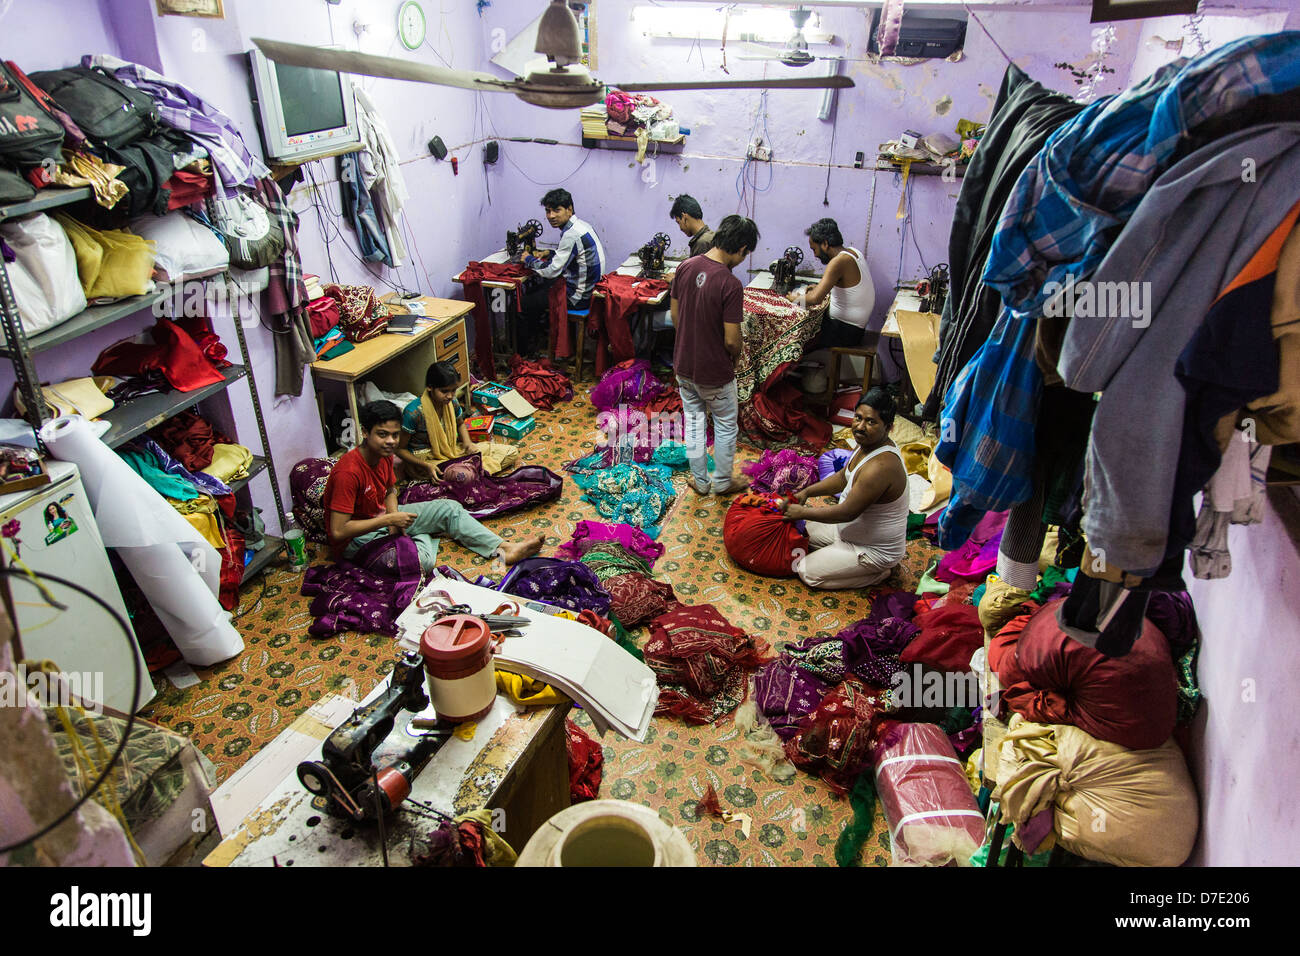 Textiles manufacturing in Old Delhi, India - Stock Image